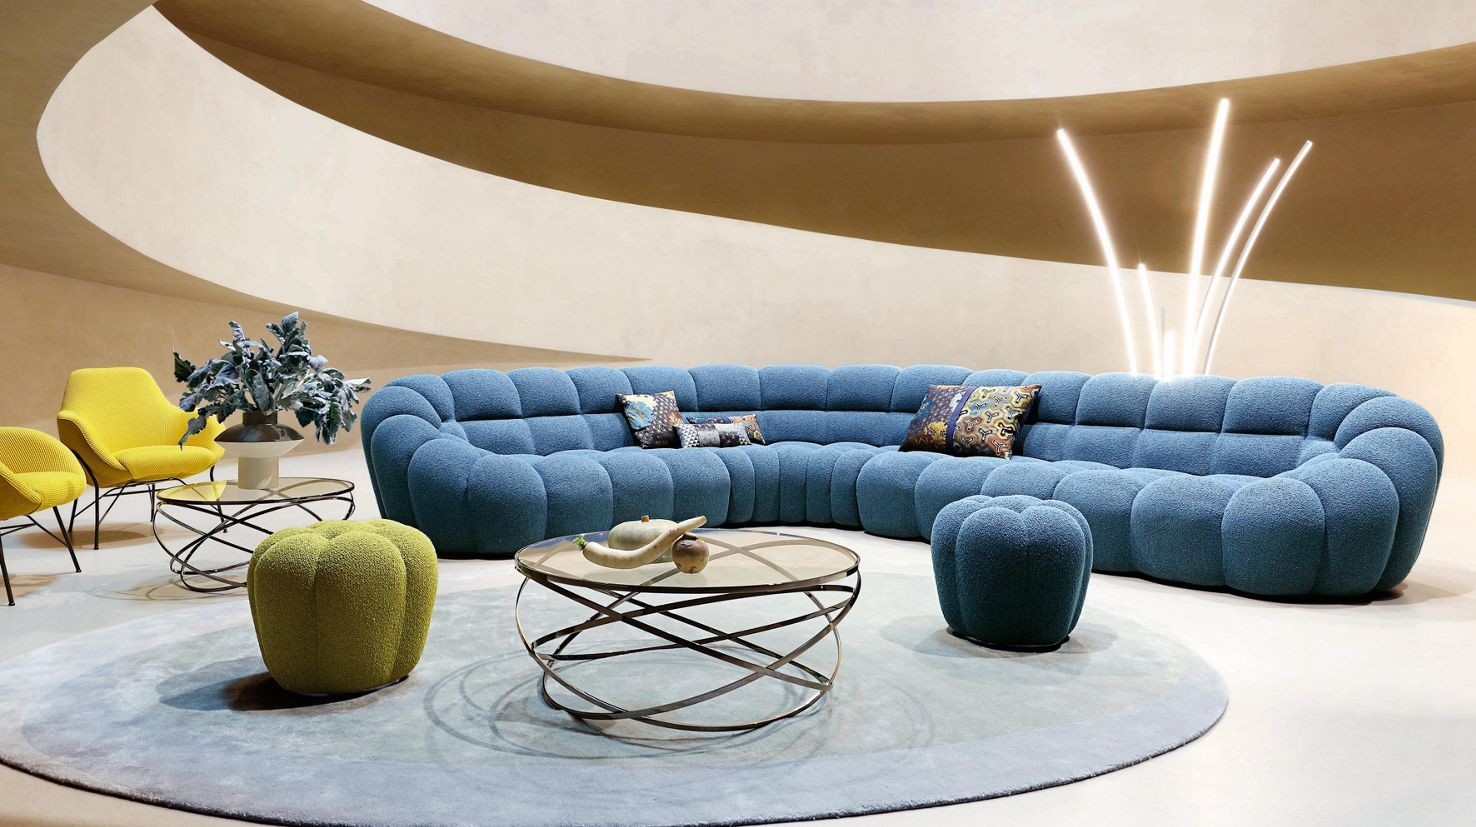 Perspective Corner Composition Roche Bobois In 2020 Furniture Design Quality Furniture House Styles